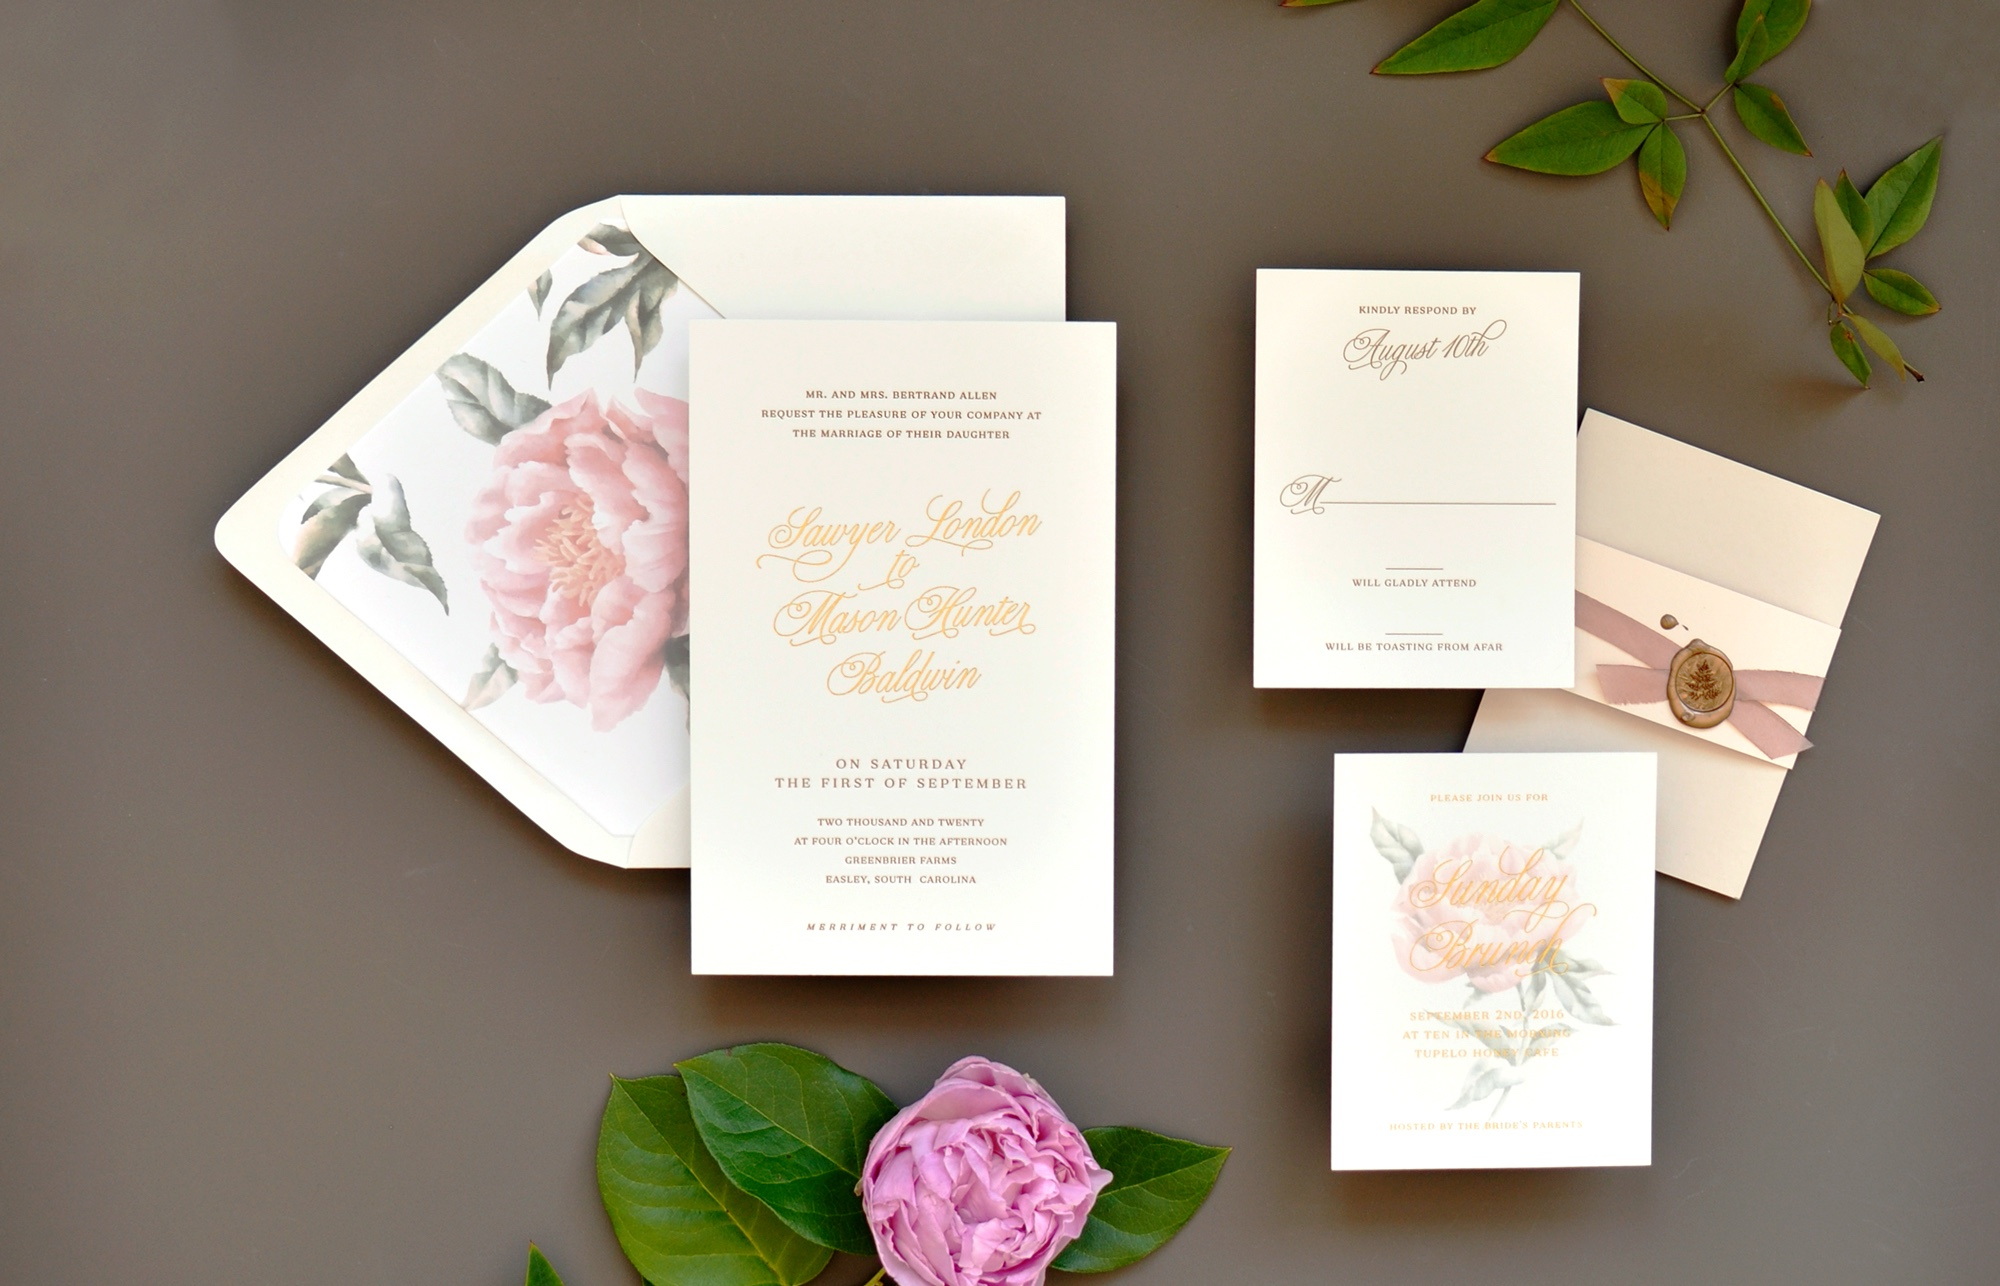 Letterpress & Foil Wedding Invitations Washington DC, peony envelope liner, neutral colors.